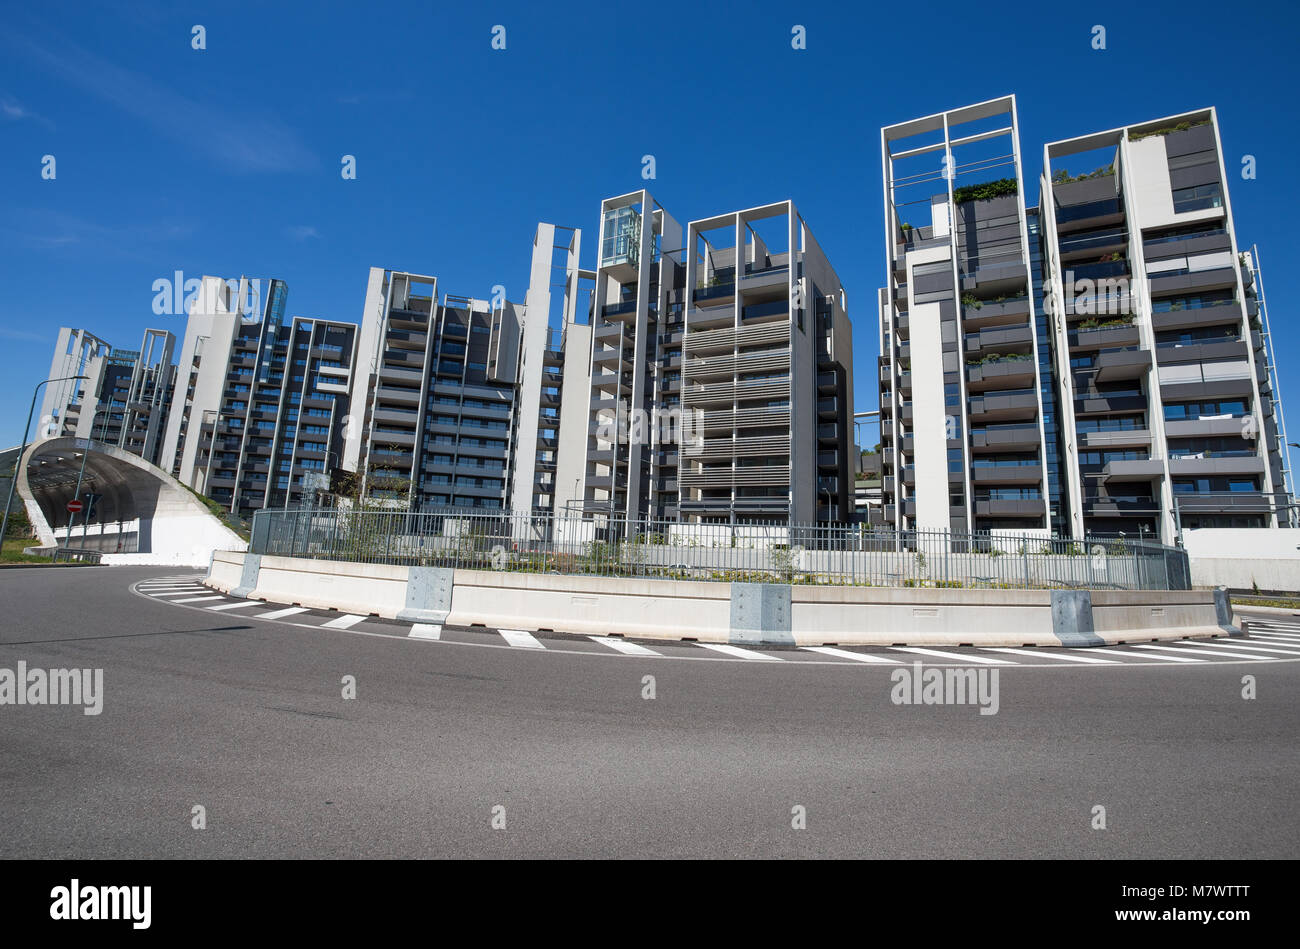 Modern buildings and offices in the new Portello area, near Milan Fiera, Milan city, Italy - Stock Image